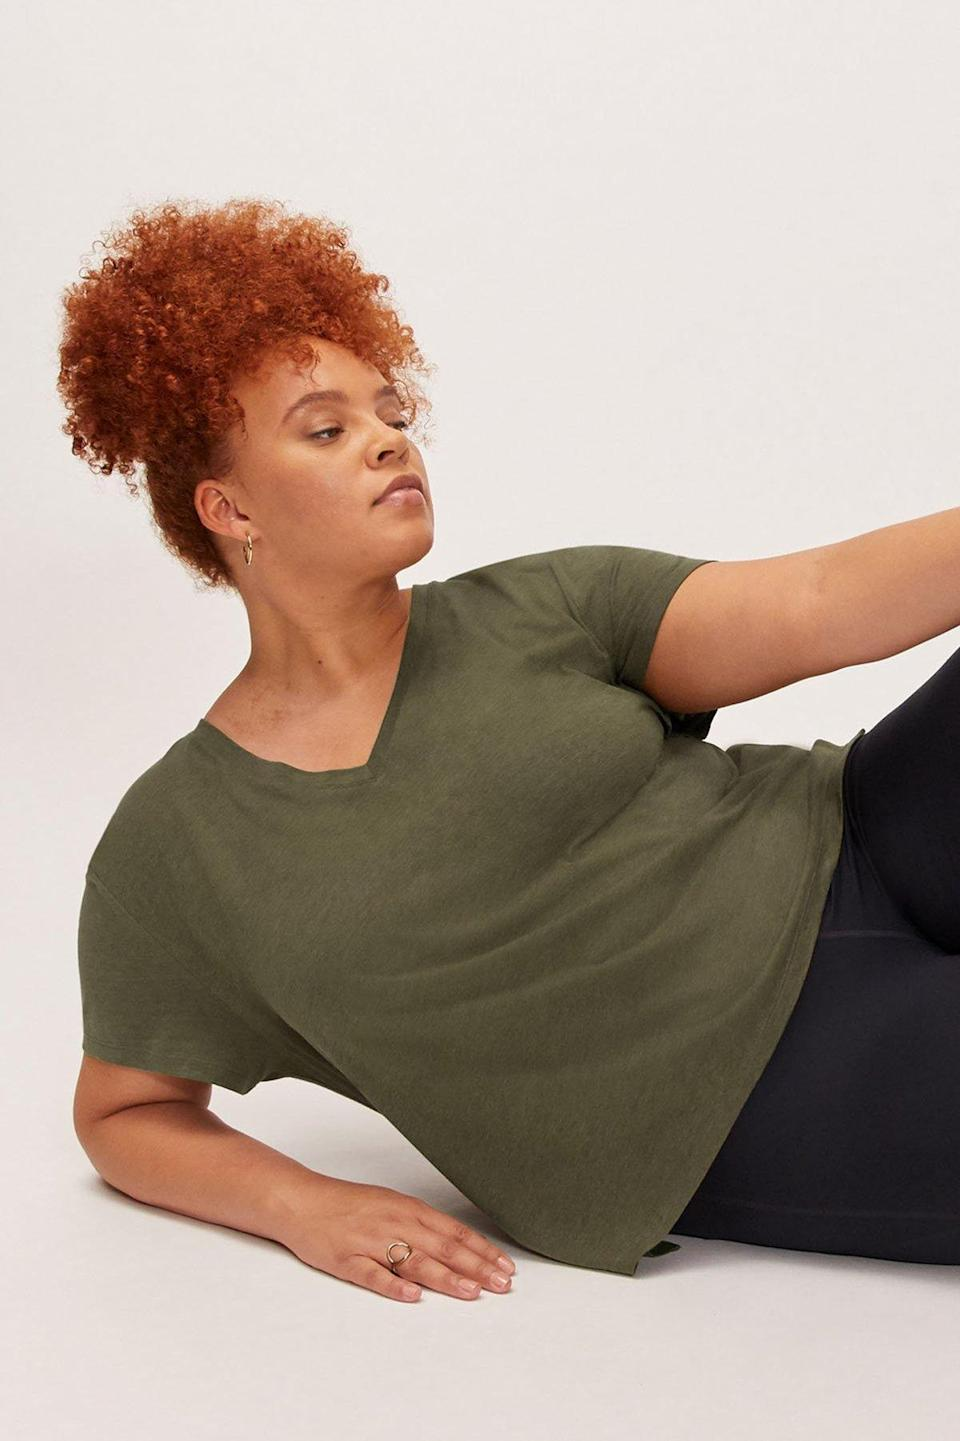 "Meet the V-neck of the future: This forward-thinking drapey tee is made of 100% biodegradable material that's hypoallergenic and repels static. $32, Girlfriend Collective. <a href=""https://www.girlfriend.com/products/fern-eva-v-neck-tee"" rel=""nofollow noopener"" target=""_blank"" data-ylk=""slk:Get it now!"" class=""link rapid-noclick-resp"">Get it now!</a>"